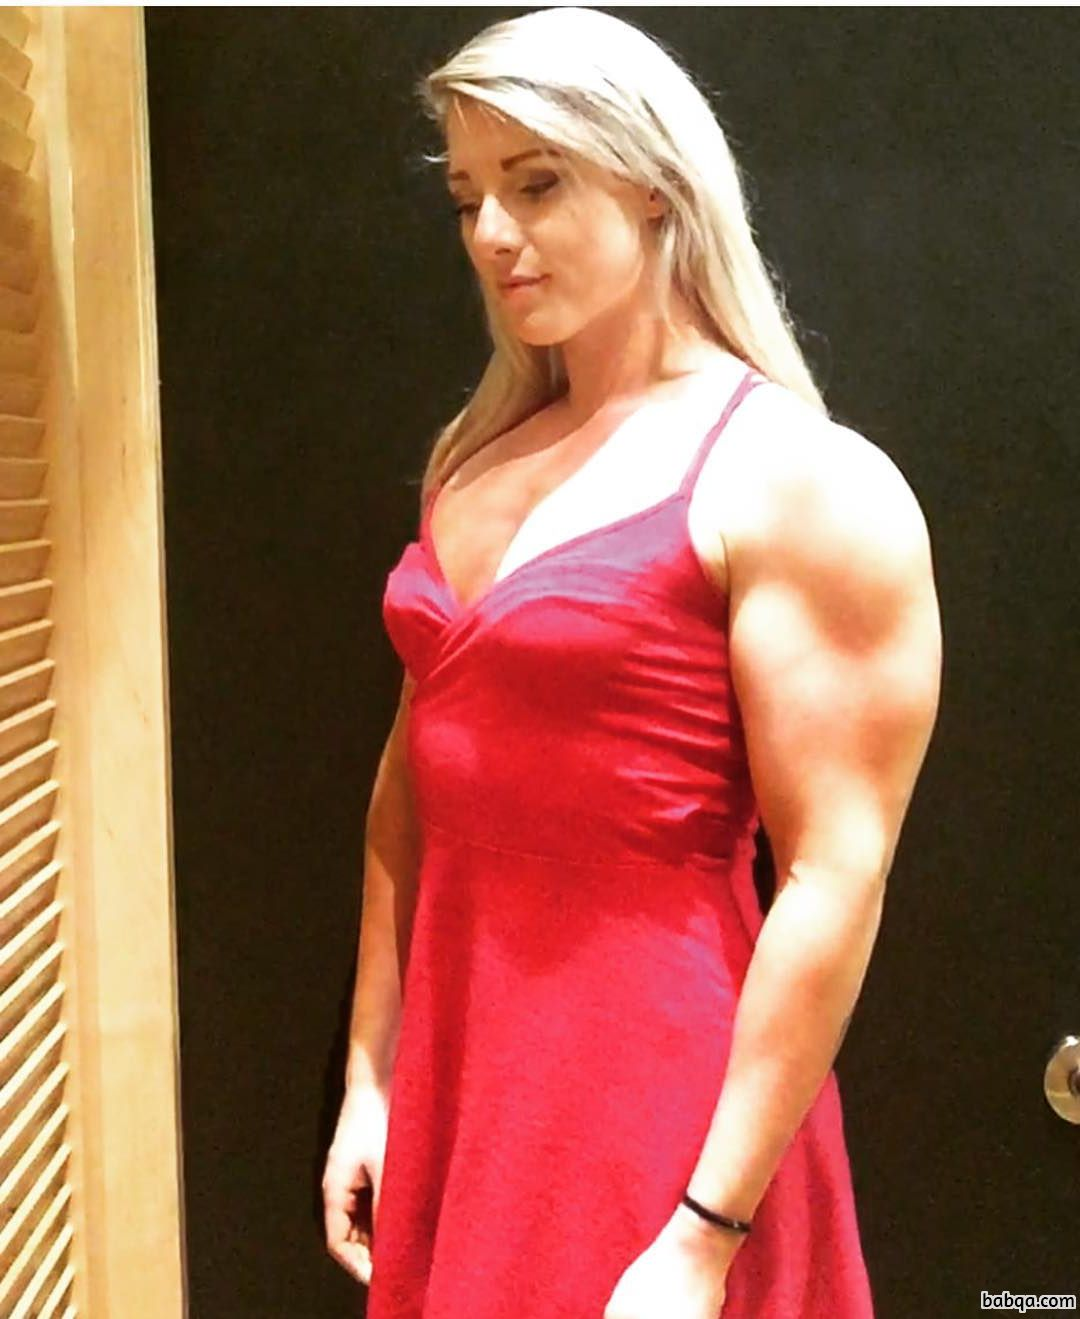 awesome female bodybuilder with fitness body and muscle arms photo from reddit